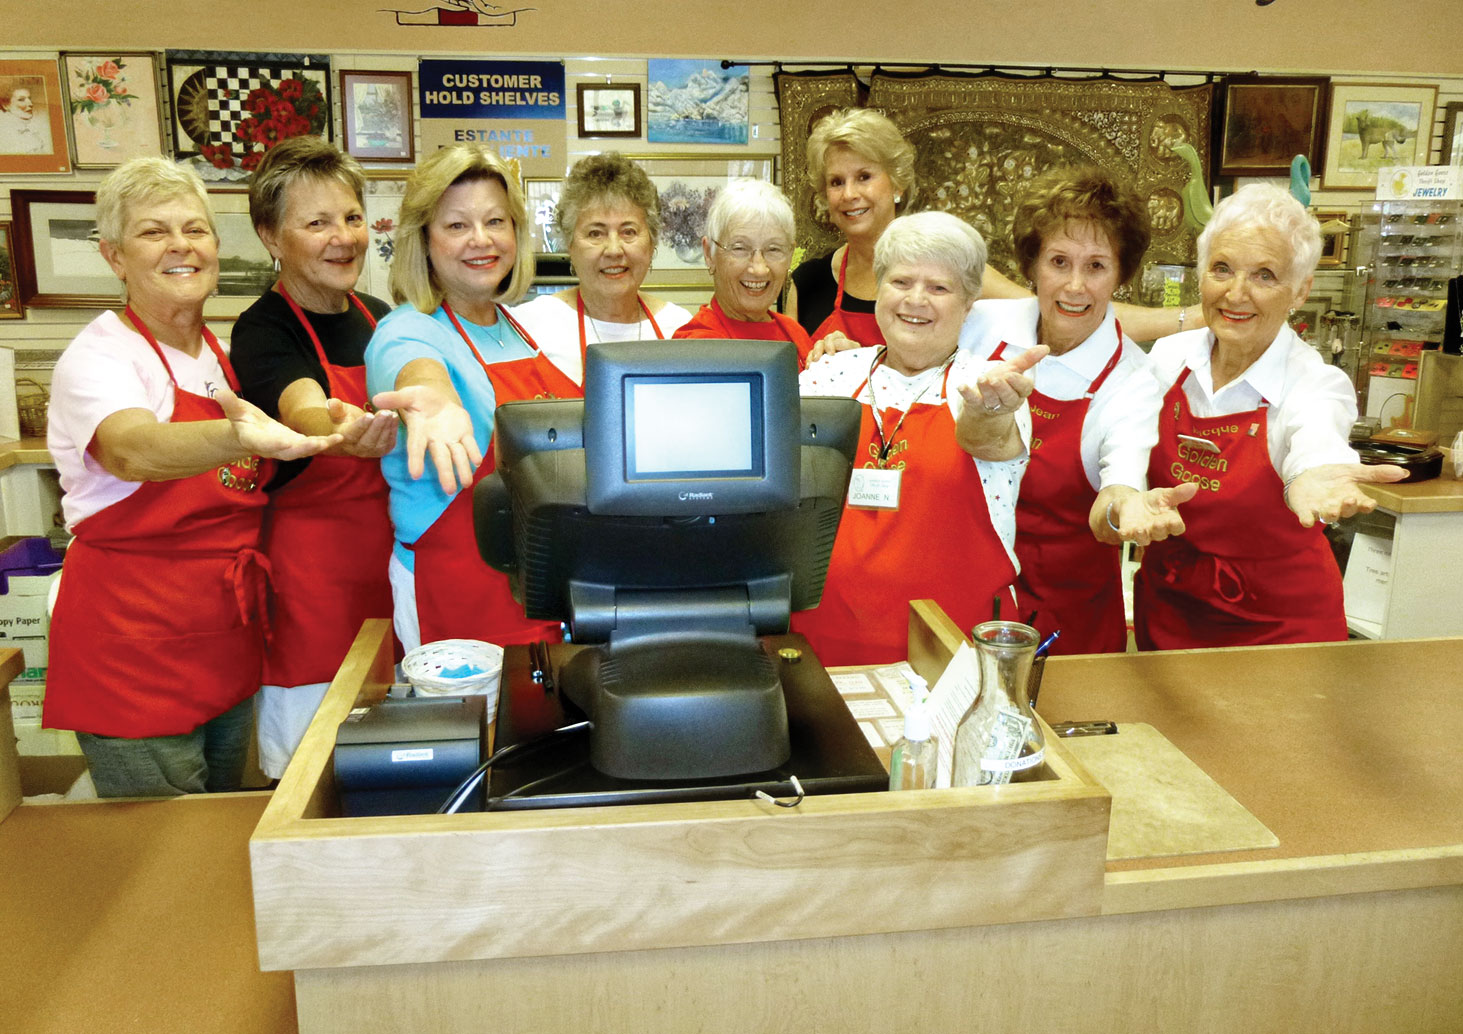 The friendly Goose cashiers undergo extensive training.